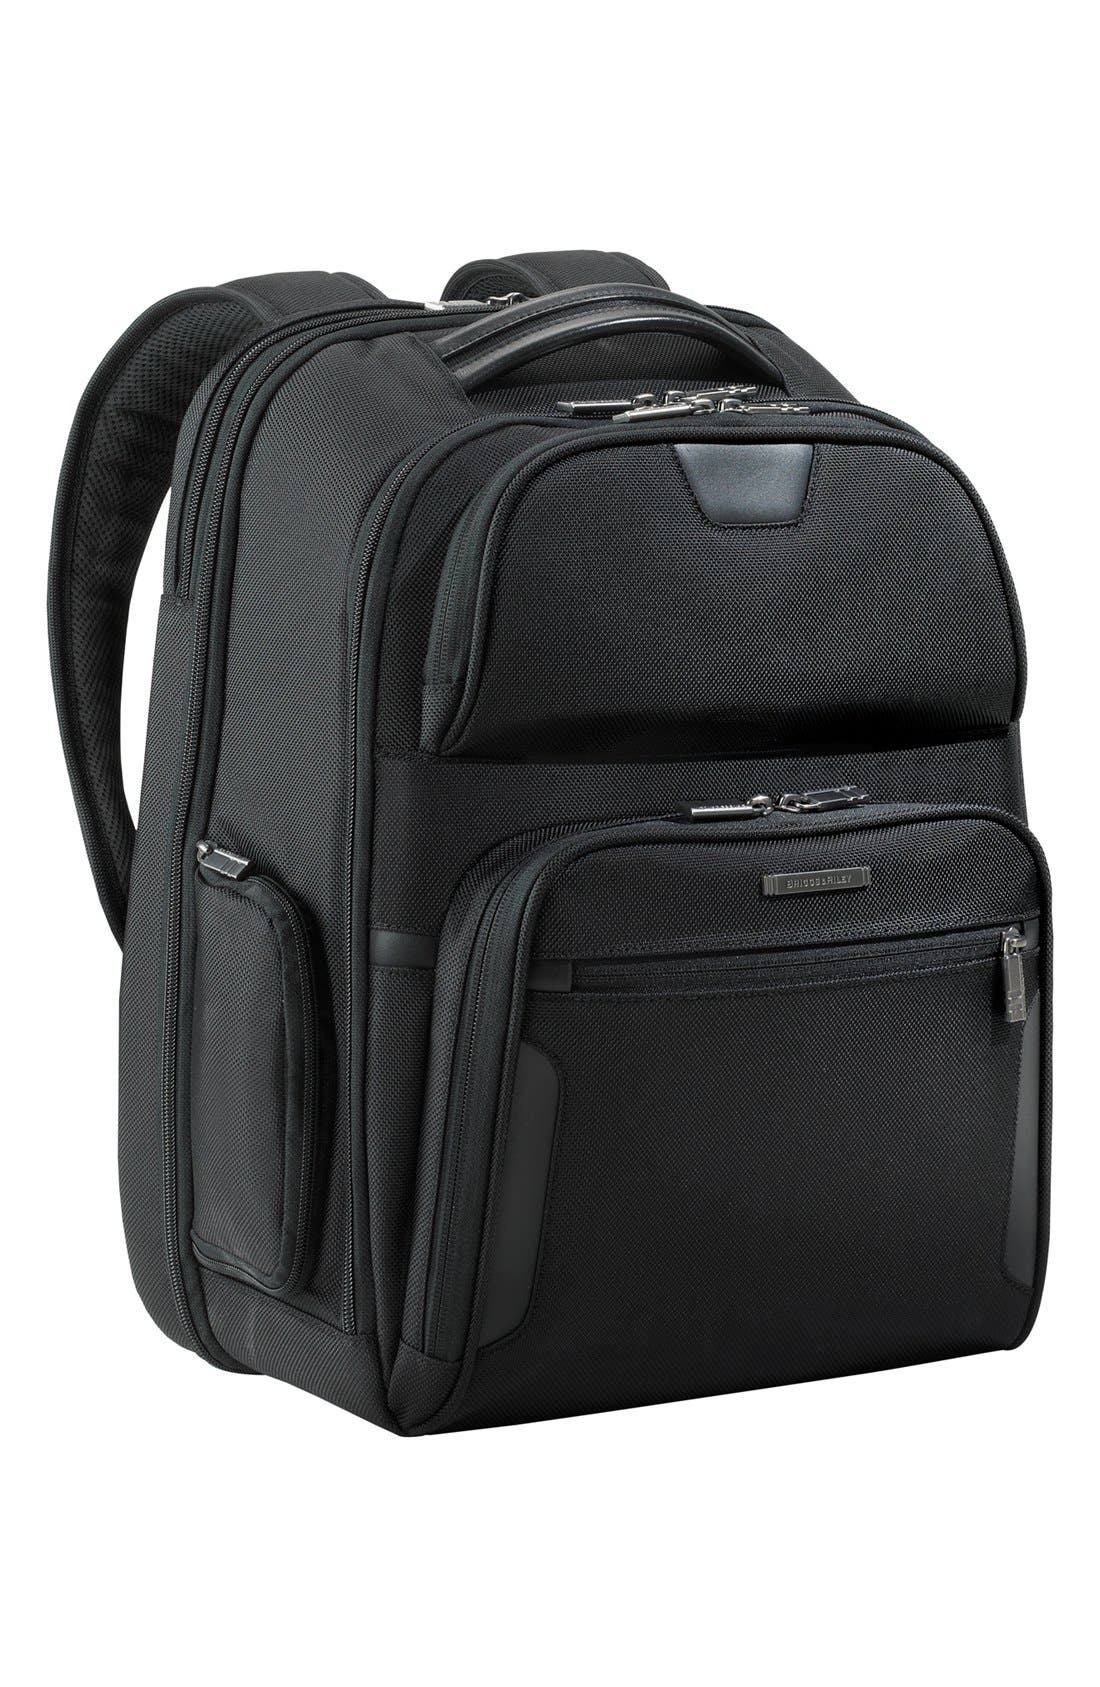 BRIGGS & RILEY Large Ballistic Nylon Clamshell Backpack